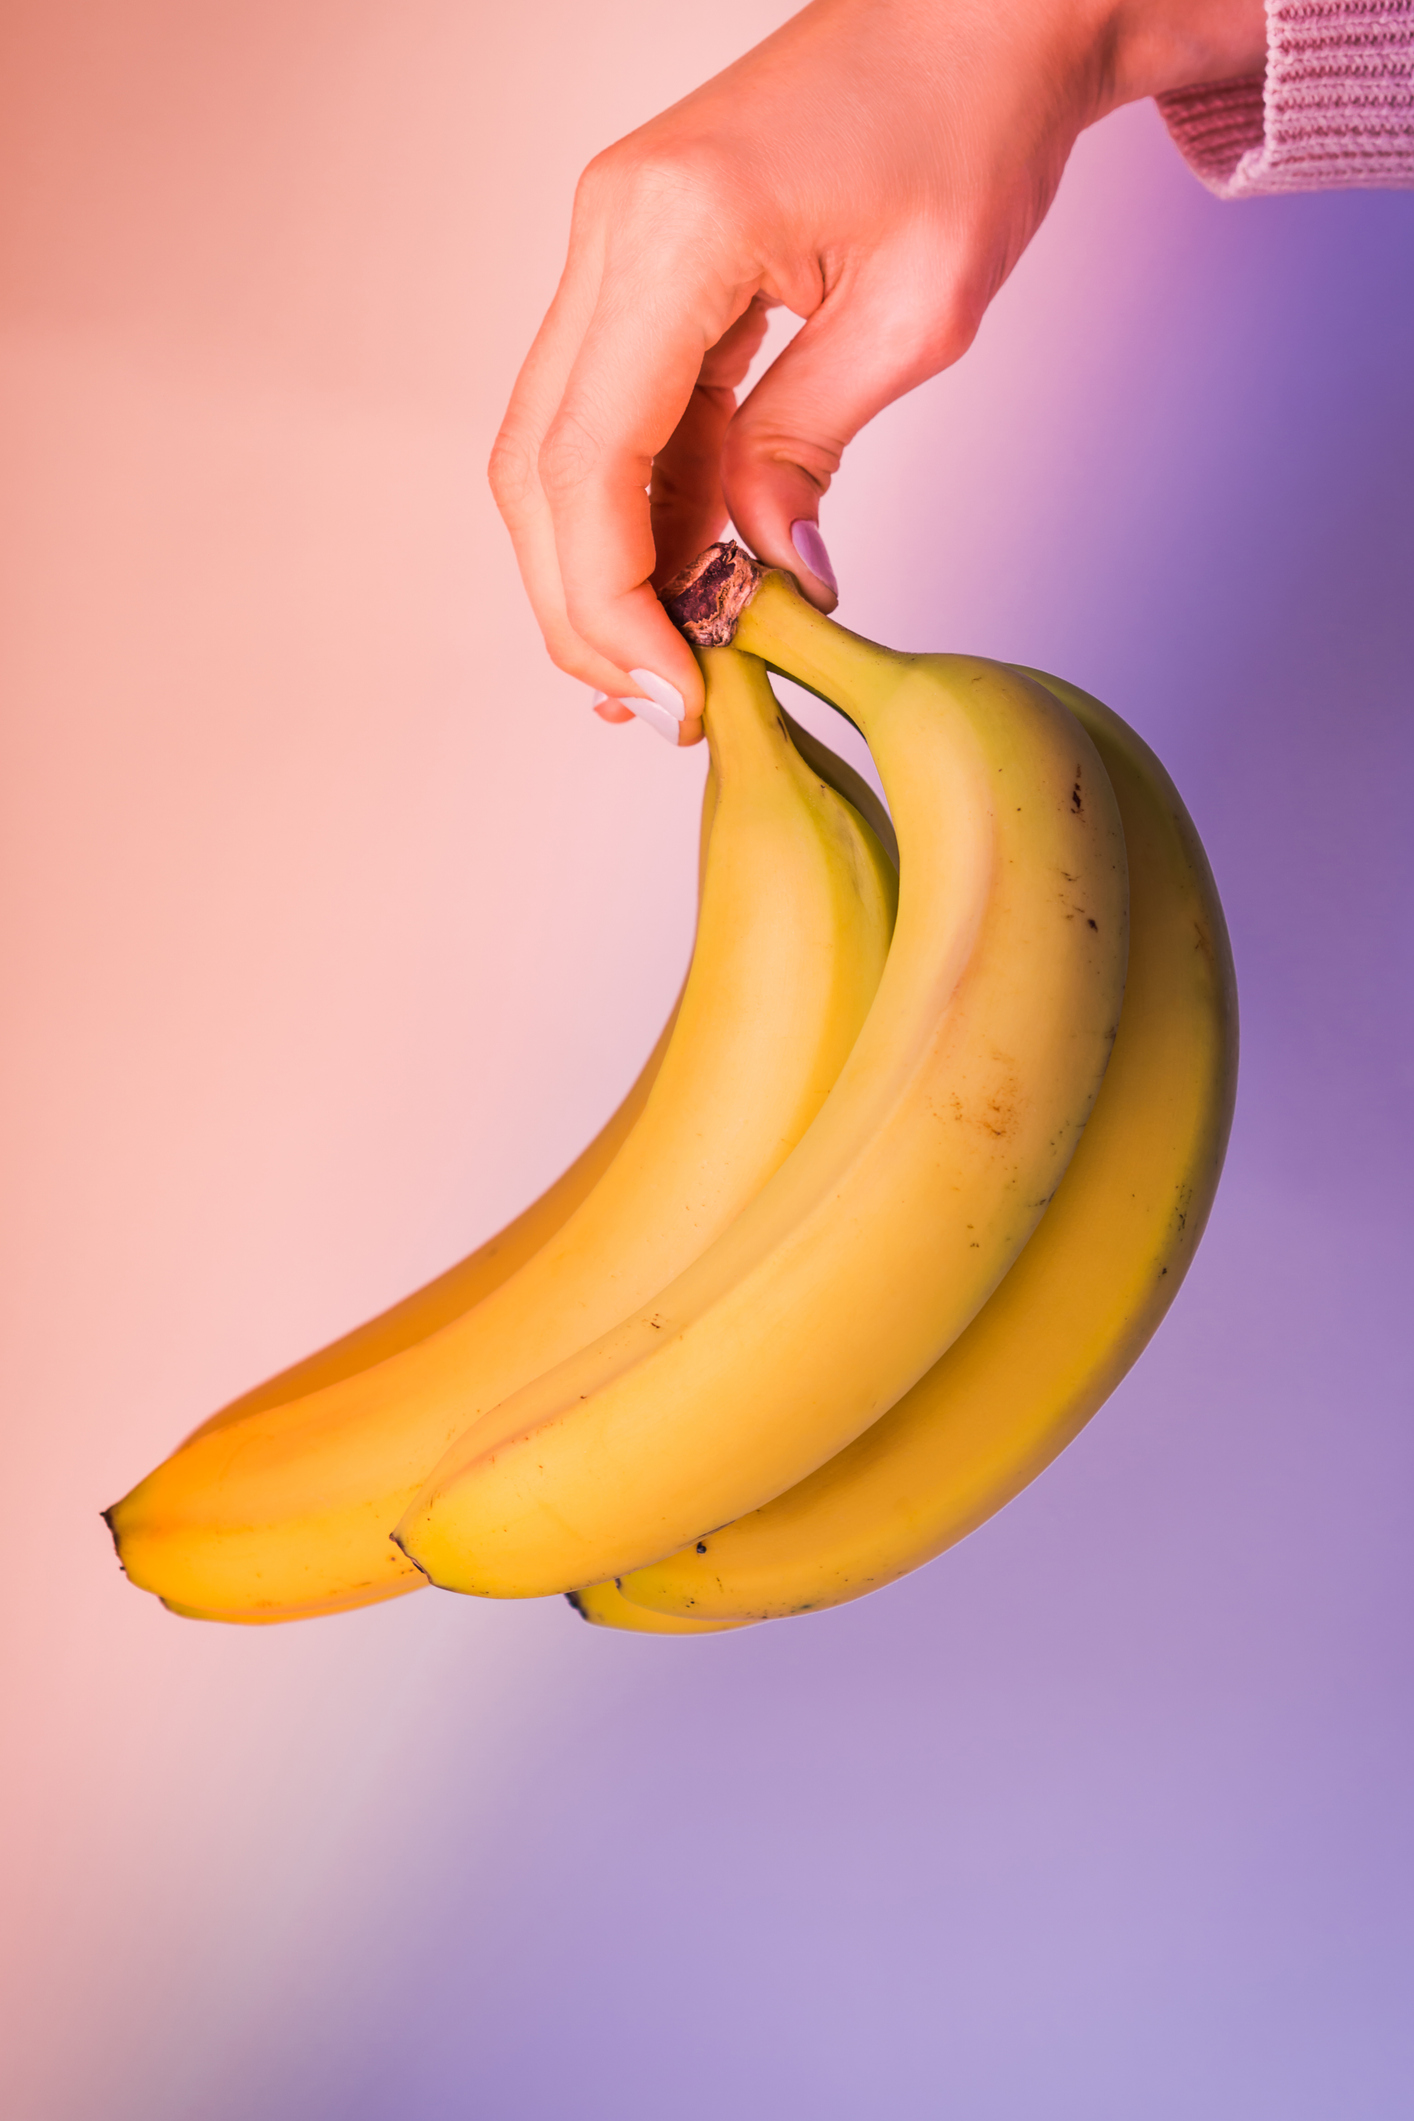 Bunch of fresh bananas in woman's hand on multi color neon background with soft light